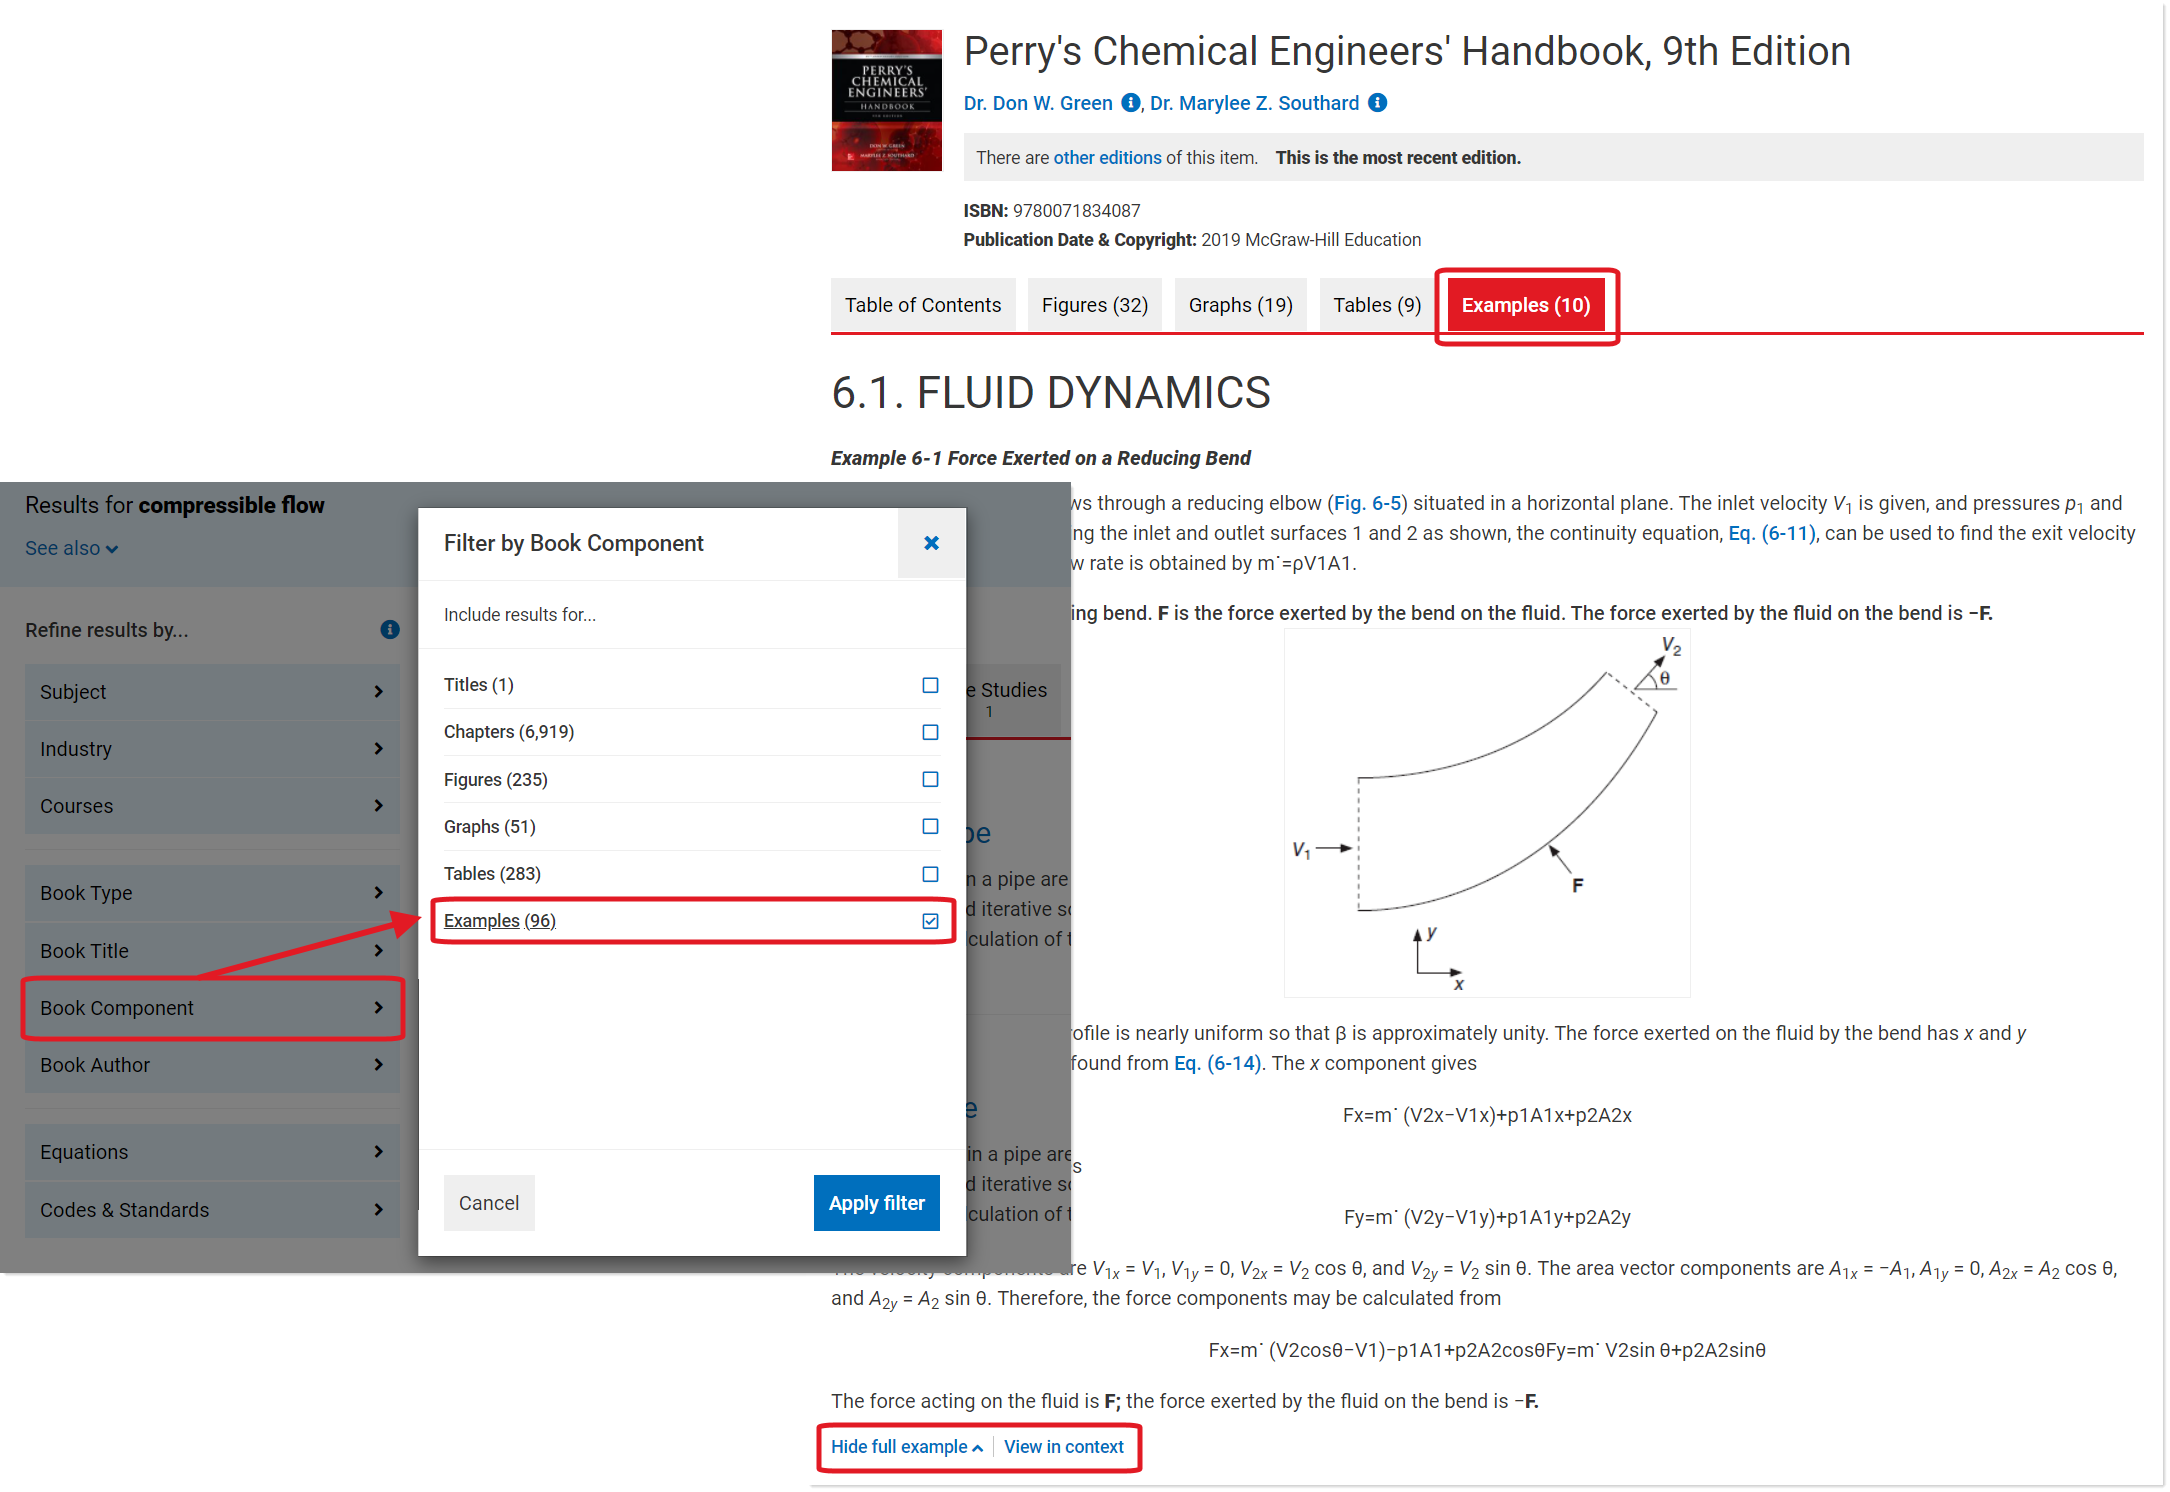 Shows Filter by Book Component option with Examples filter highlighted, and Examples tab within book chapter with view in context link highlighted